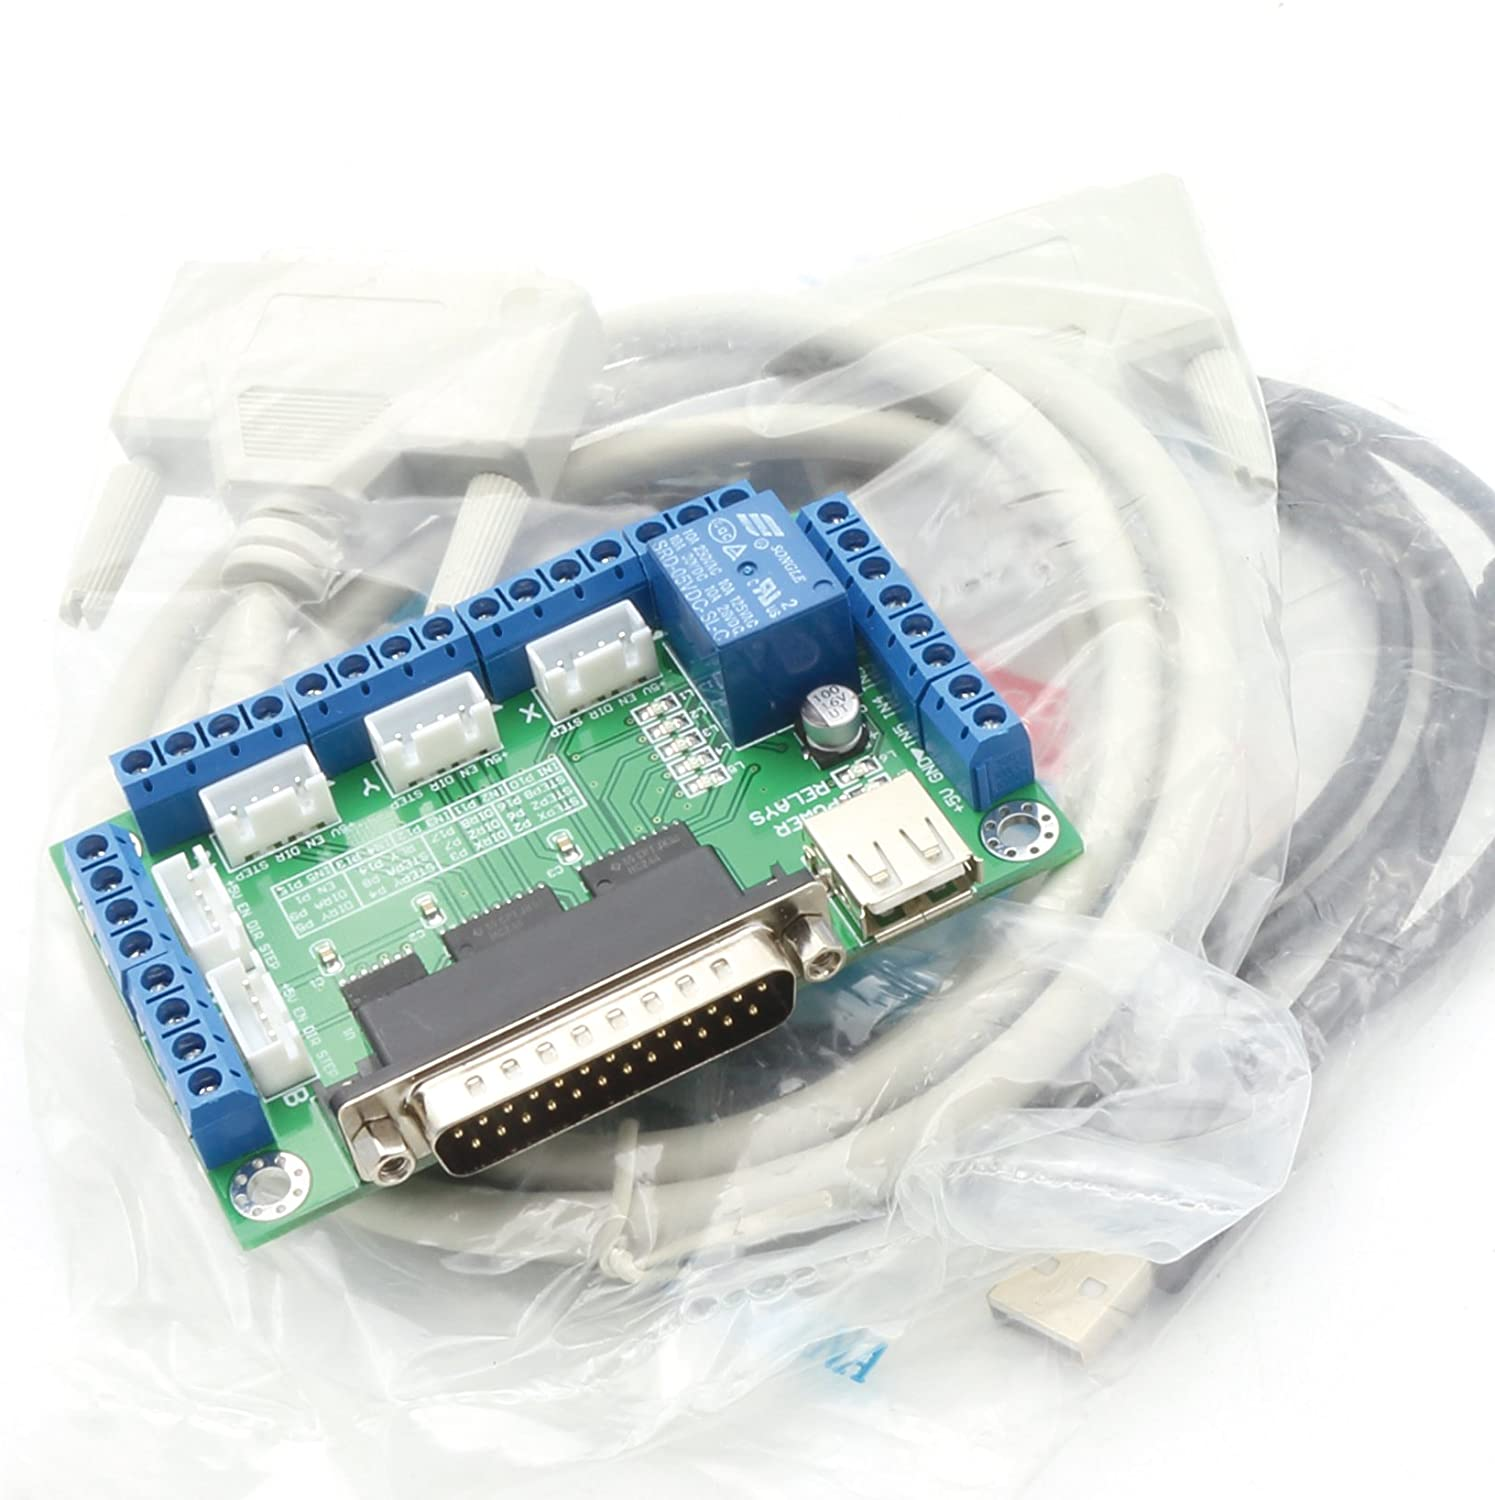 5 Axis Breakout Board interface Mach3 CNC Controller